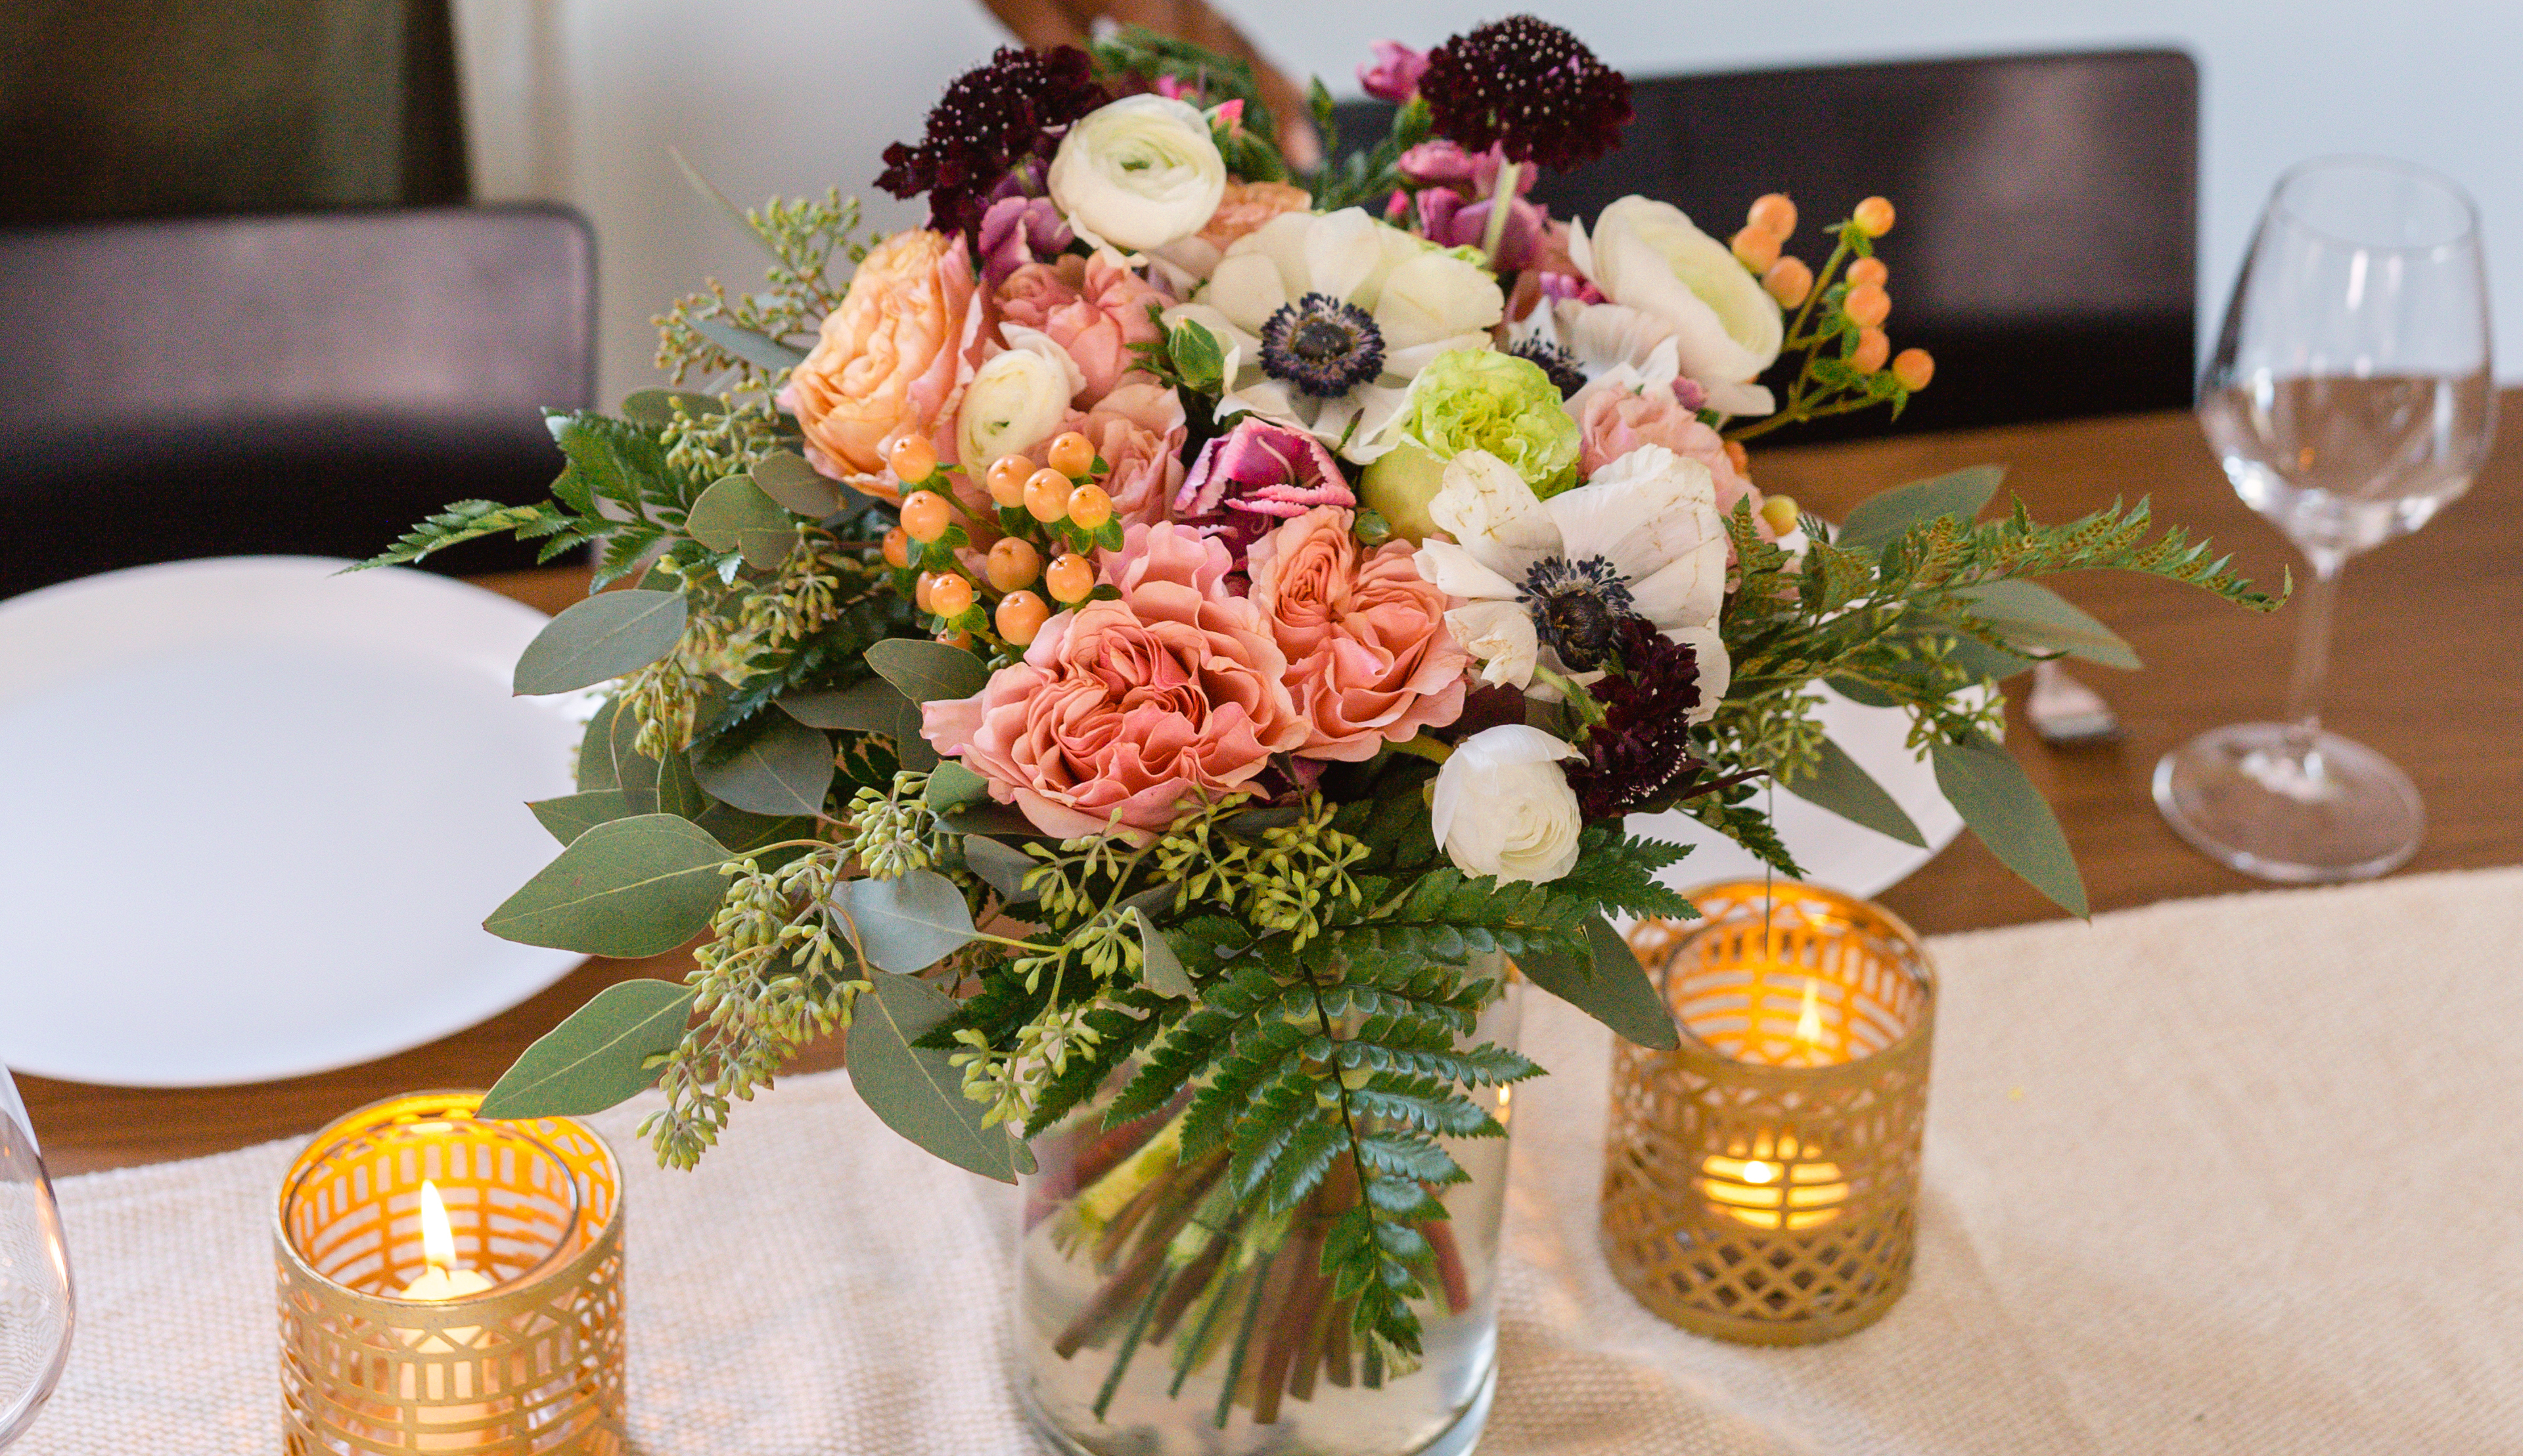 Fall table decor with beautiful fall floral bouquet